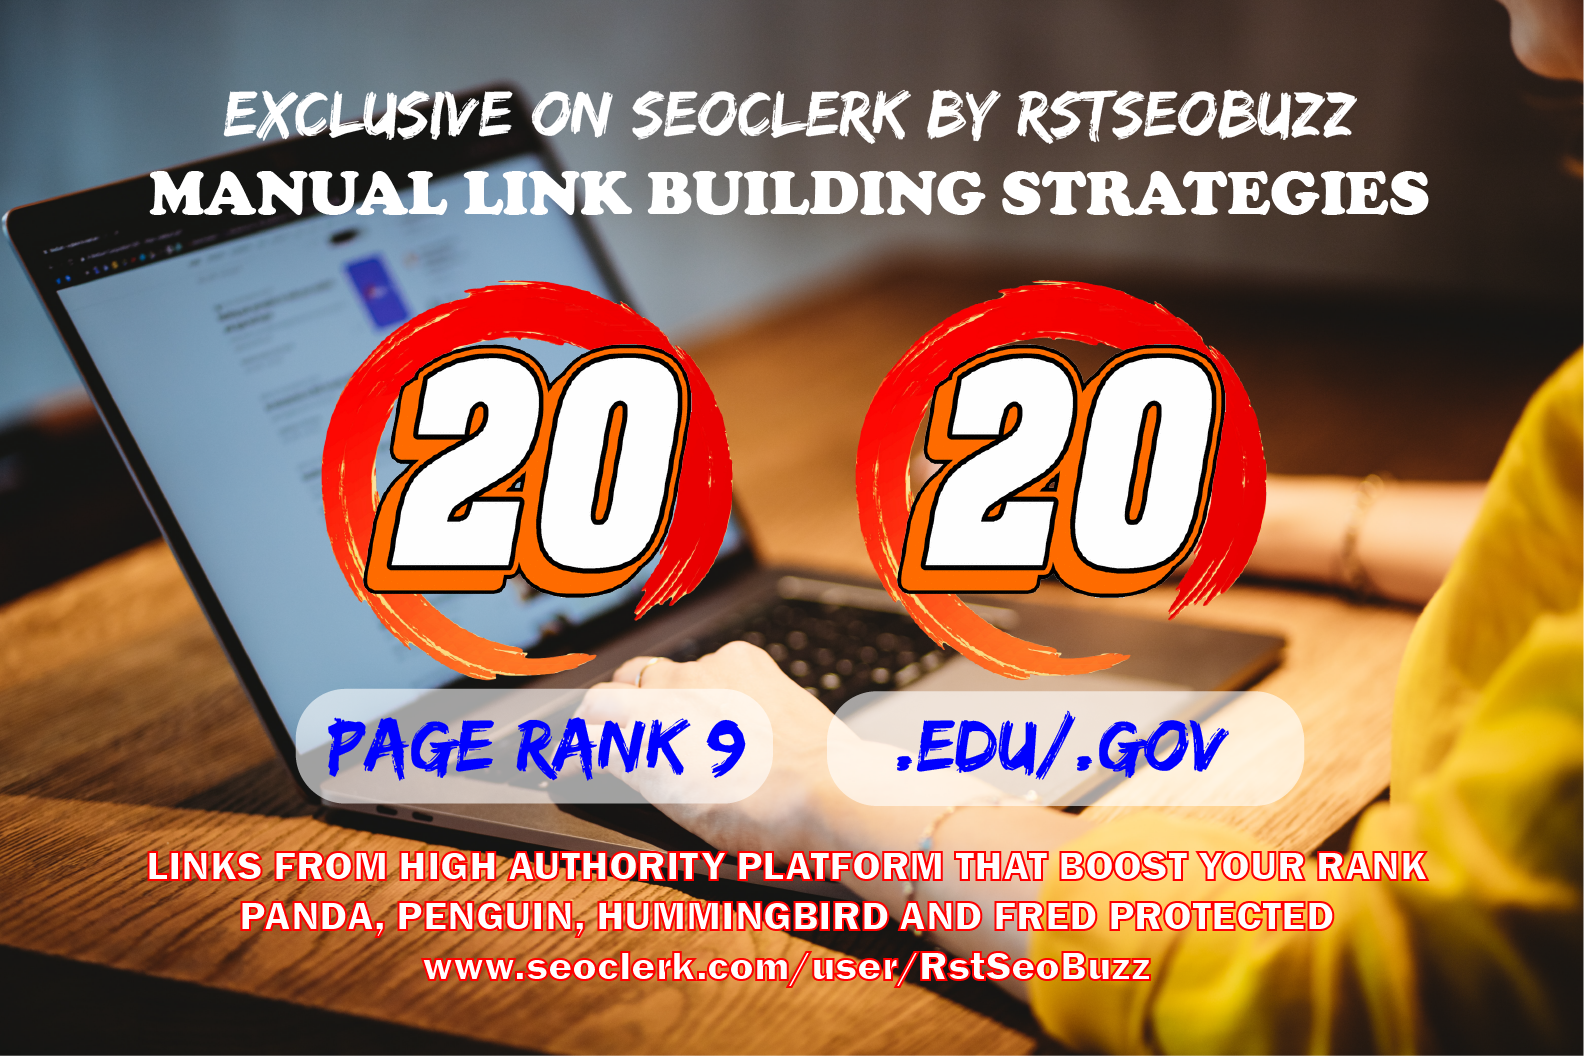 20 Pr9 + 20 Edu - Gov High SEO Authority Backlinks - Fire Your Google Ranking 2021